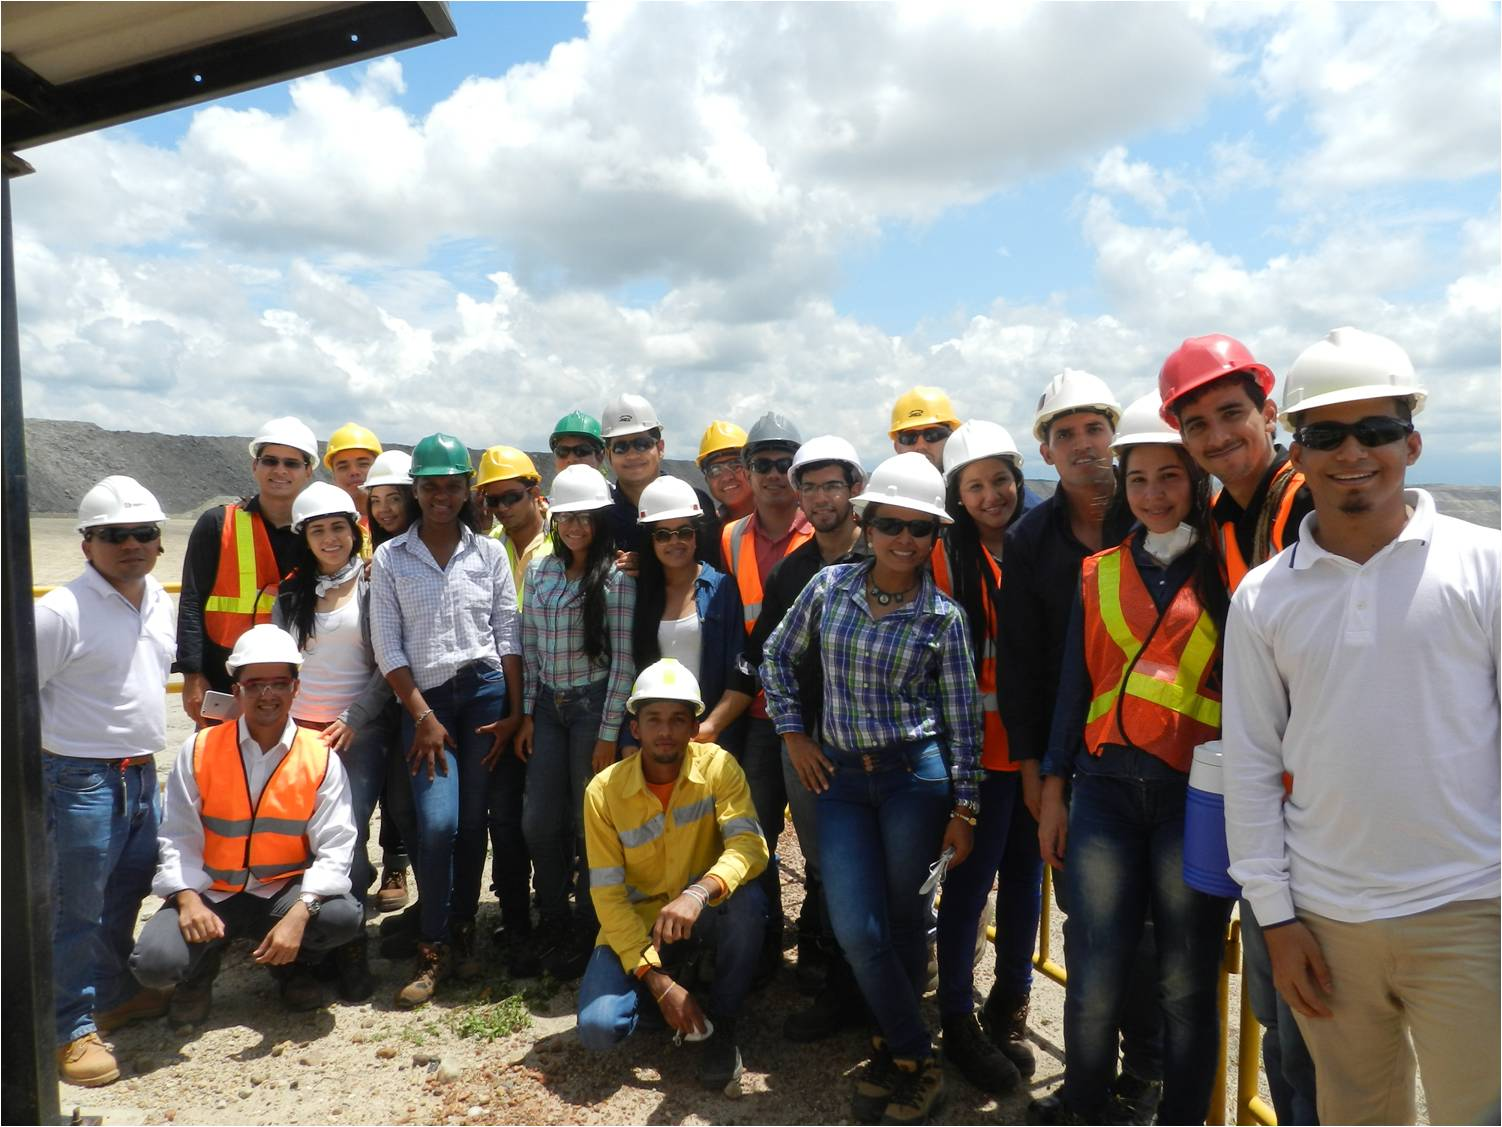 *Mining Engineering students from Fundación Universitaria del Área Andina accompanied by Drummond Ltd.'s administrative personnel at the Viewpoint, Ramp 7.